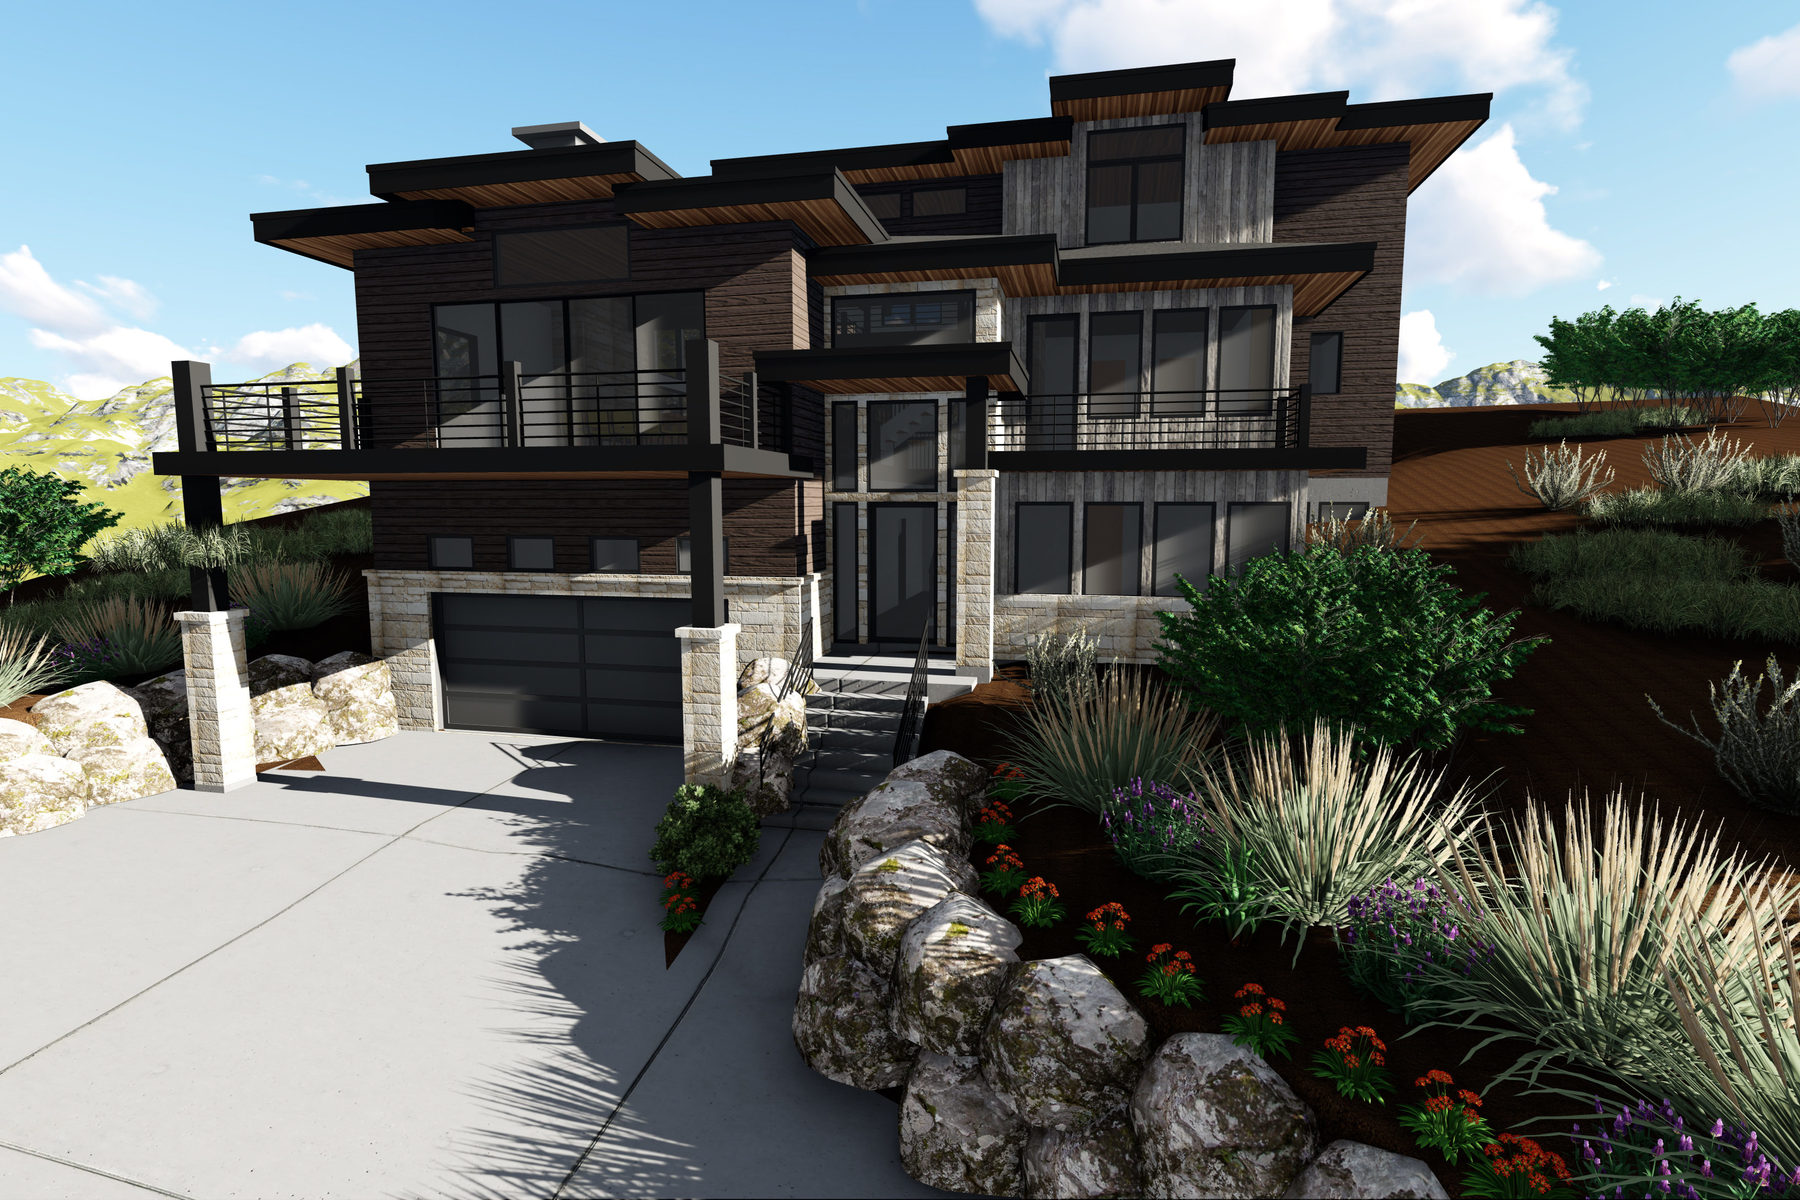 Single Family Home for Sale at New Construction Opportunity 3121 Mountain Ridge Ct Park City, Utah, 84060 United States